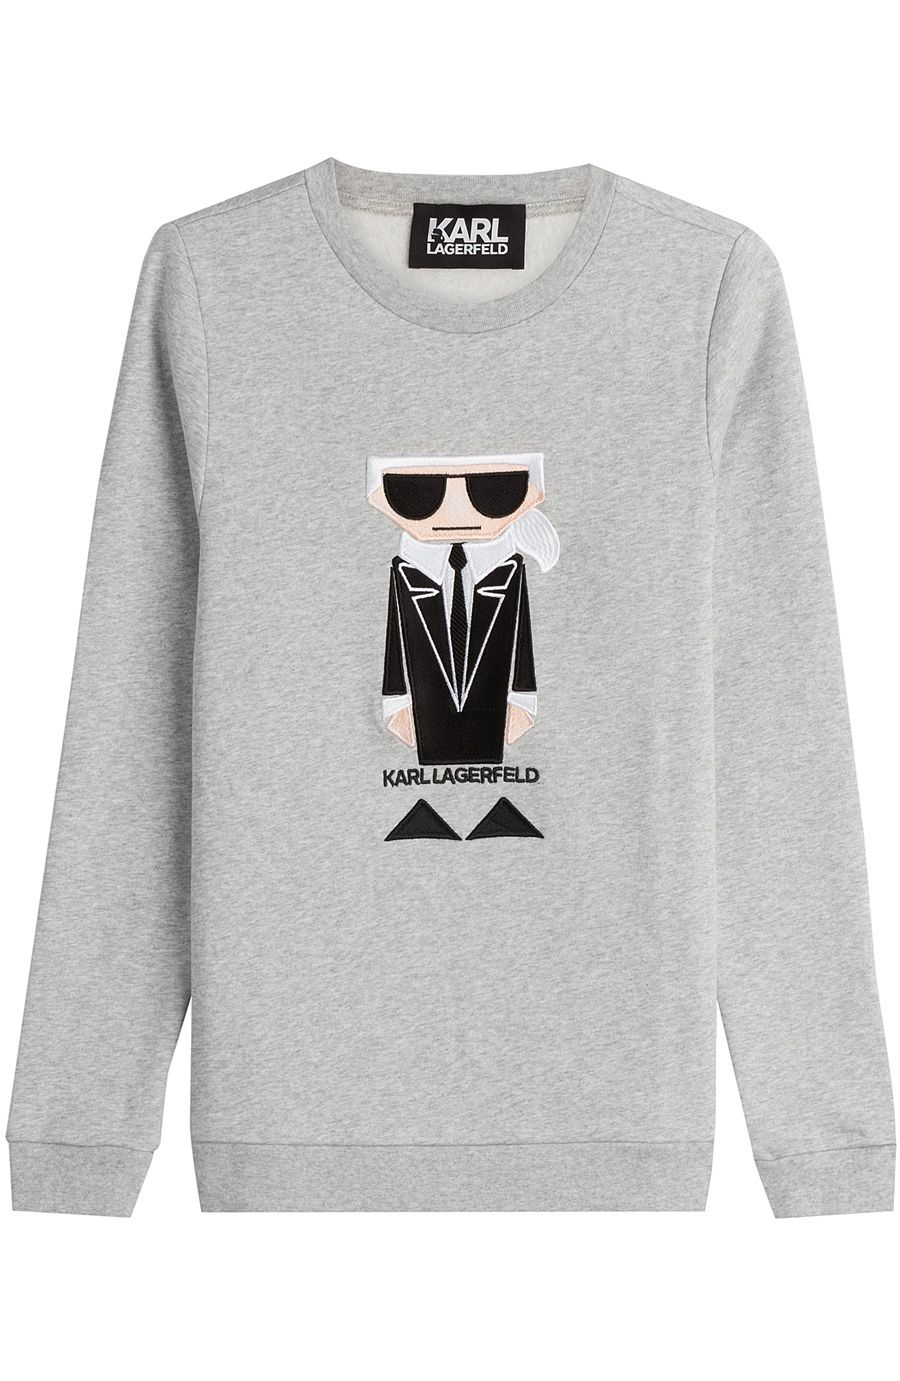 KARL LAGERFELD Kocktail Karl Cotton Sweatshirt. #karllagerfeld #cloth #sweatshirts